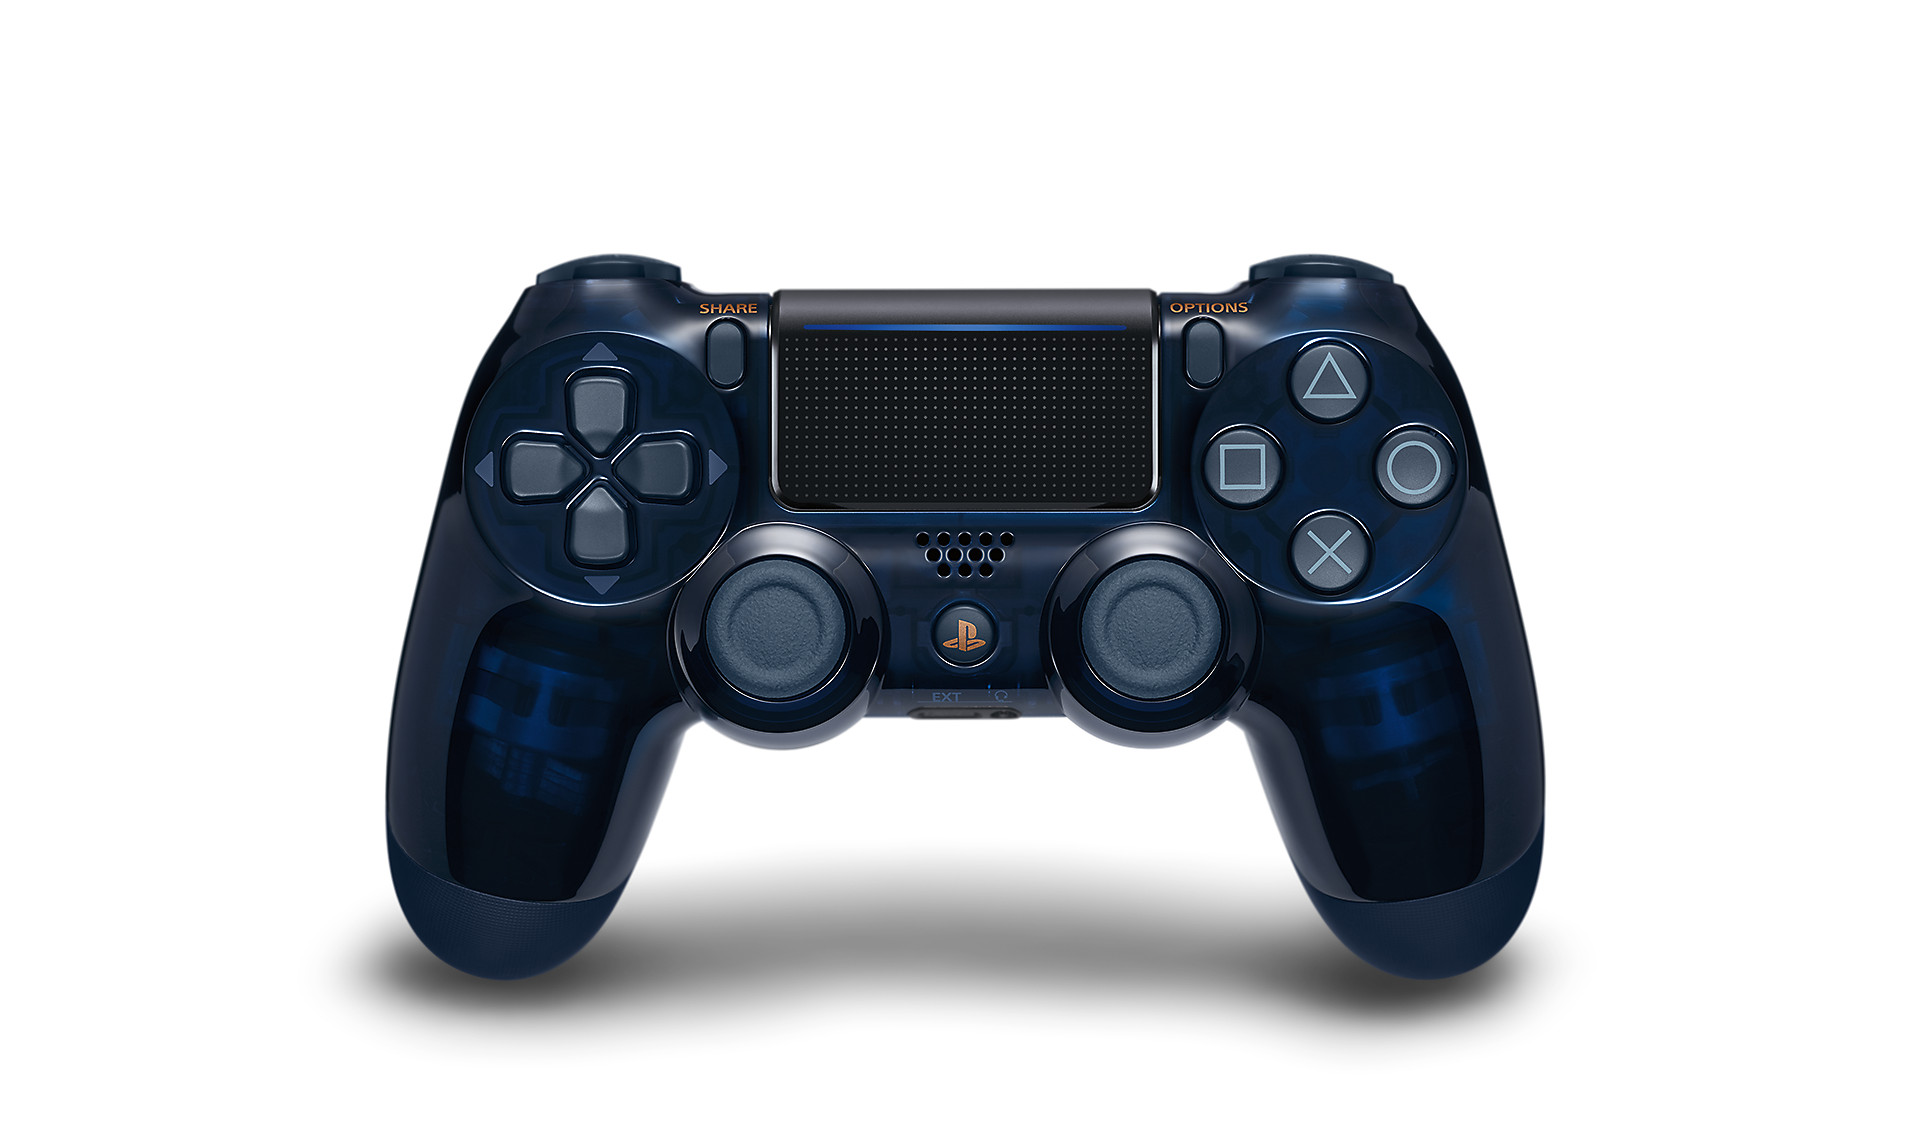 500 Million Limited Edition DUALSHOCK 4 - PlayStation Accessories